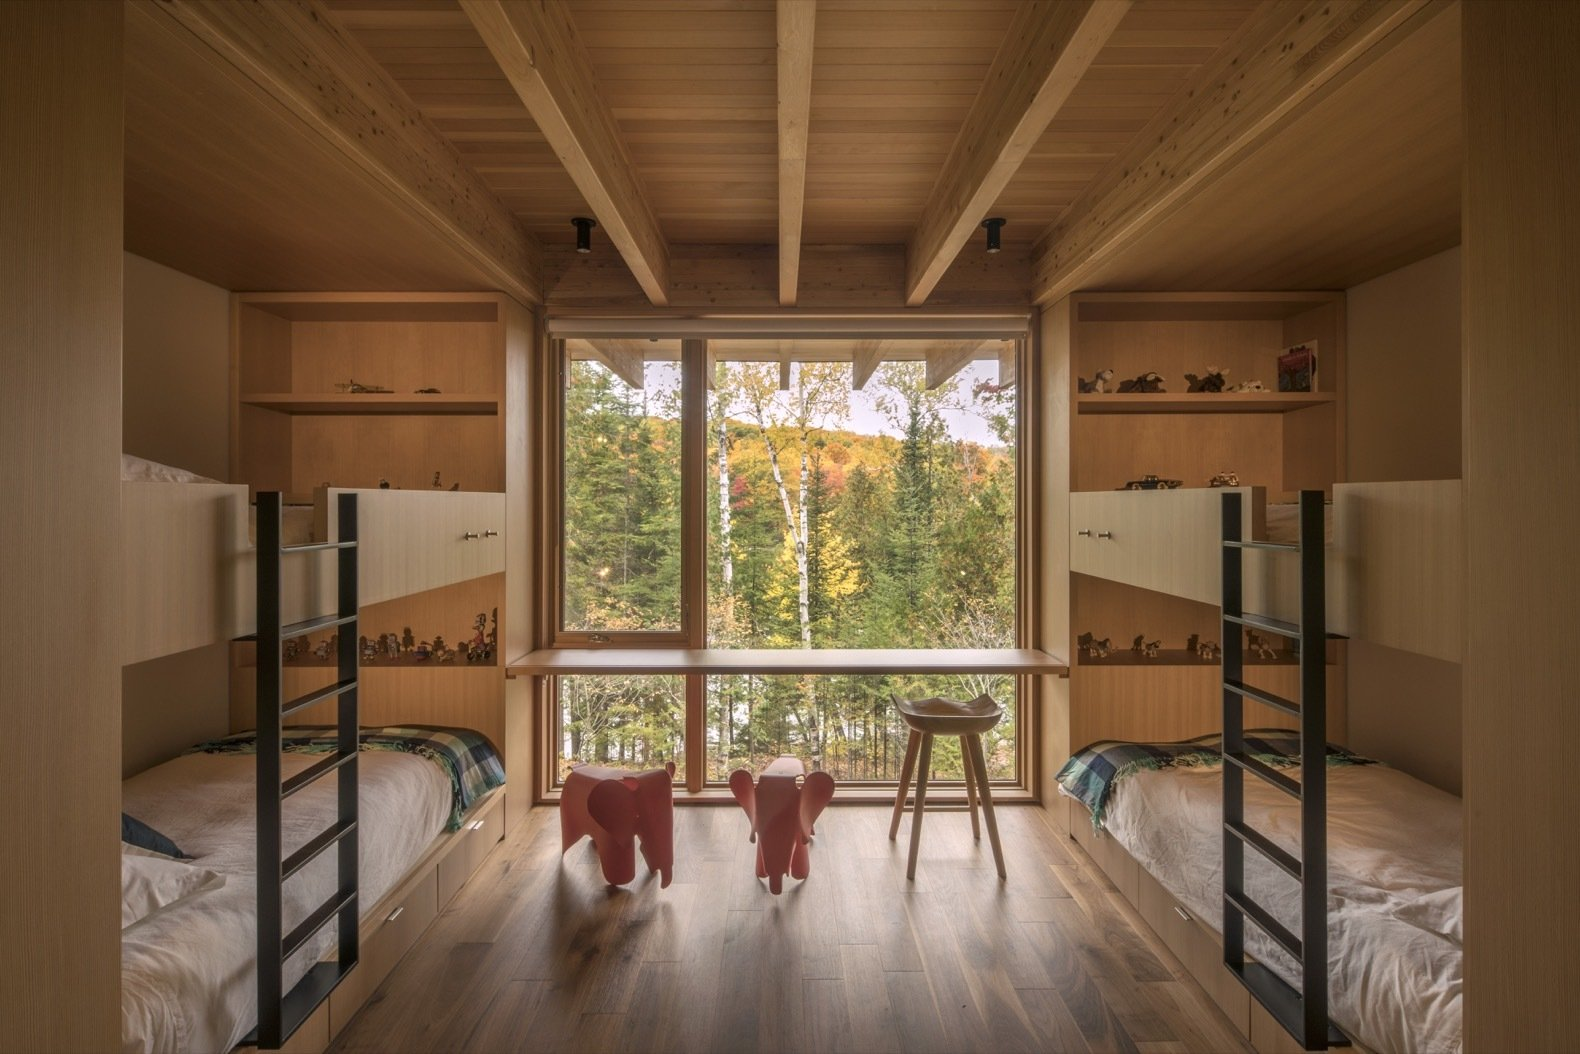 Kids, Chair, Bunks, Shelves, Bedroom, Desk, Neutral, and Medium Hardwood Oversized sliding doors open to the bunk room with floor-to-ceiling windows overlooking the serene lake.    Kids Desk Neutral Photos from This Award-Winning Cabin Is a Relaxing Antidote to City Living